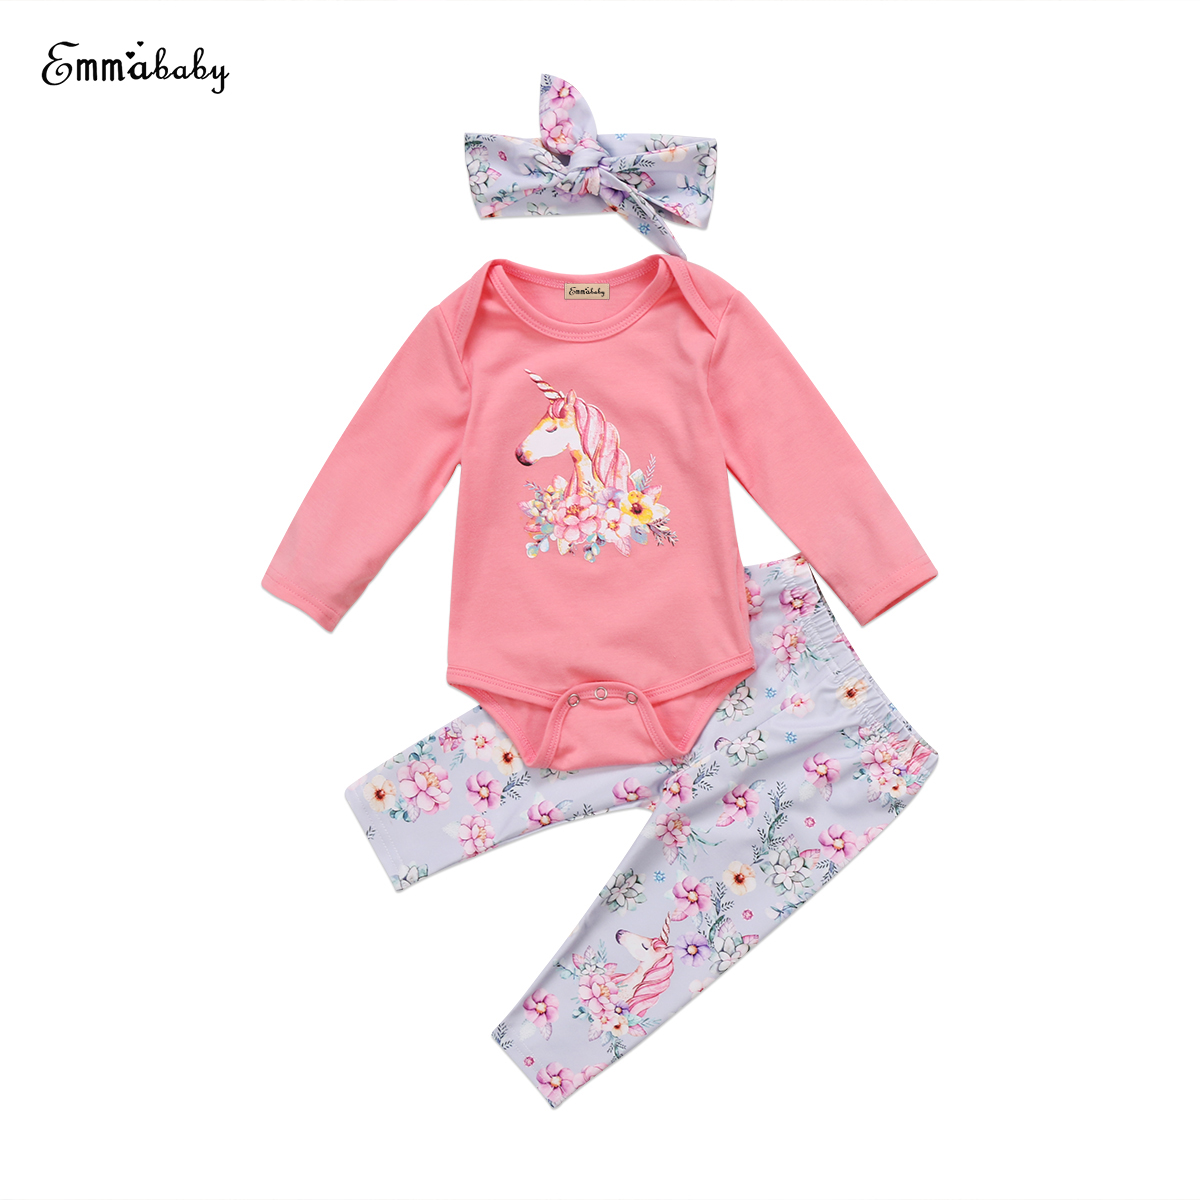 New Lovely Unicorn Print Kids Clothes Sets Newborn Baby Girl Outfit Clothes Set Long Sleeve Tops Leggings Pants Headband Set